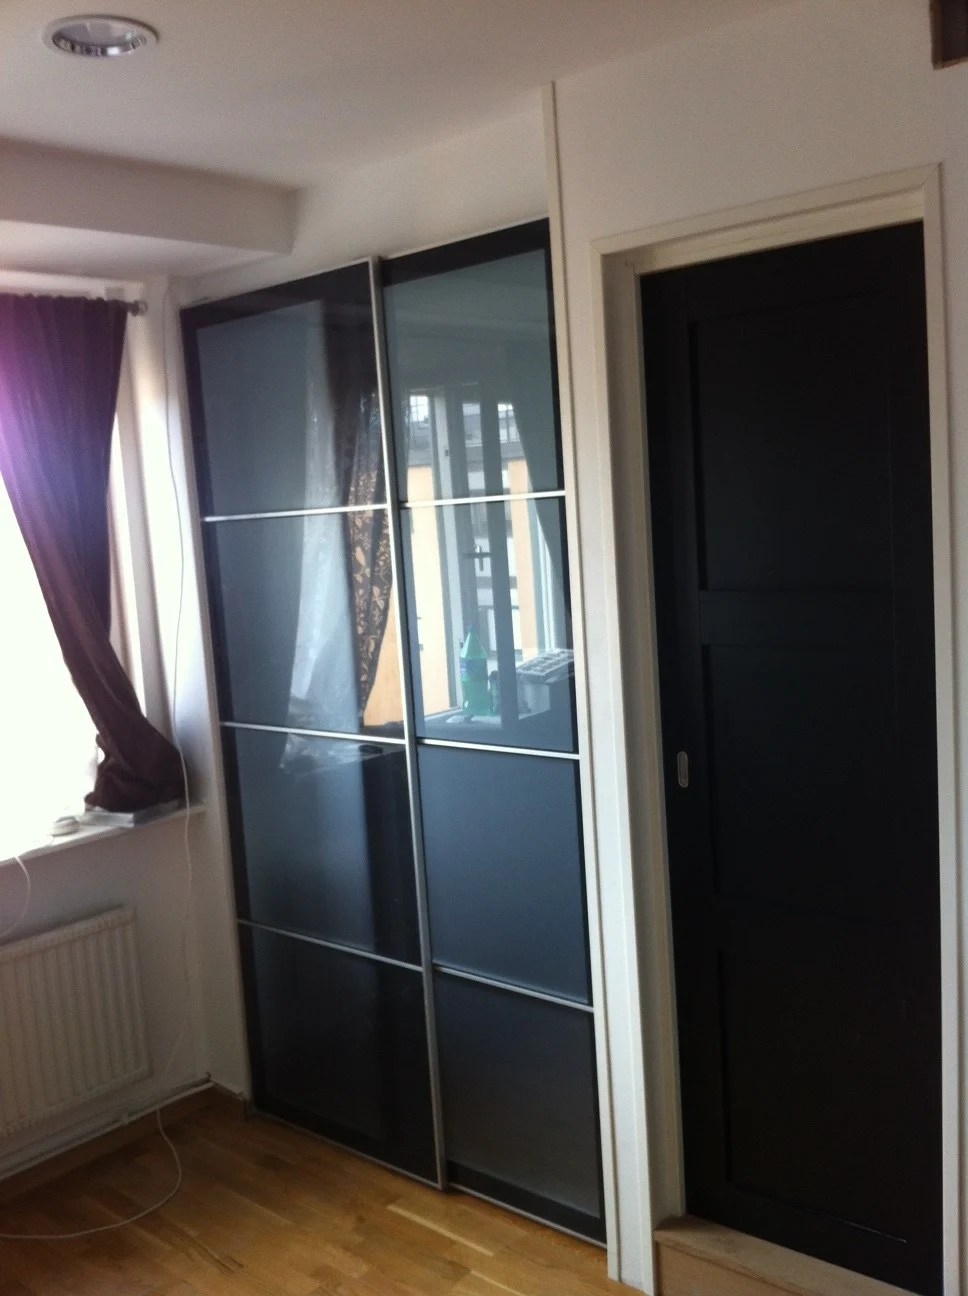 Le Meilleur Ikea Sliding Door For Sleeping Alcove Tight Spaces Ikea Ce Mois Ci